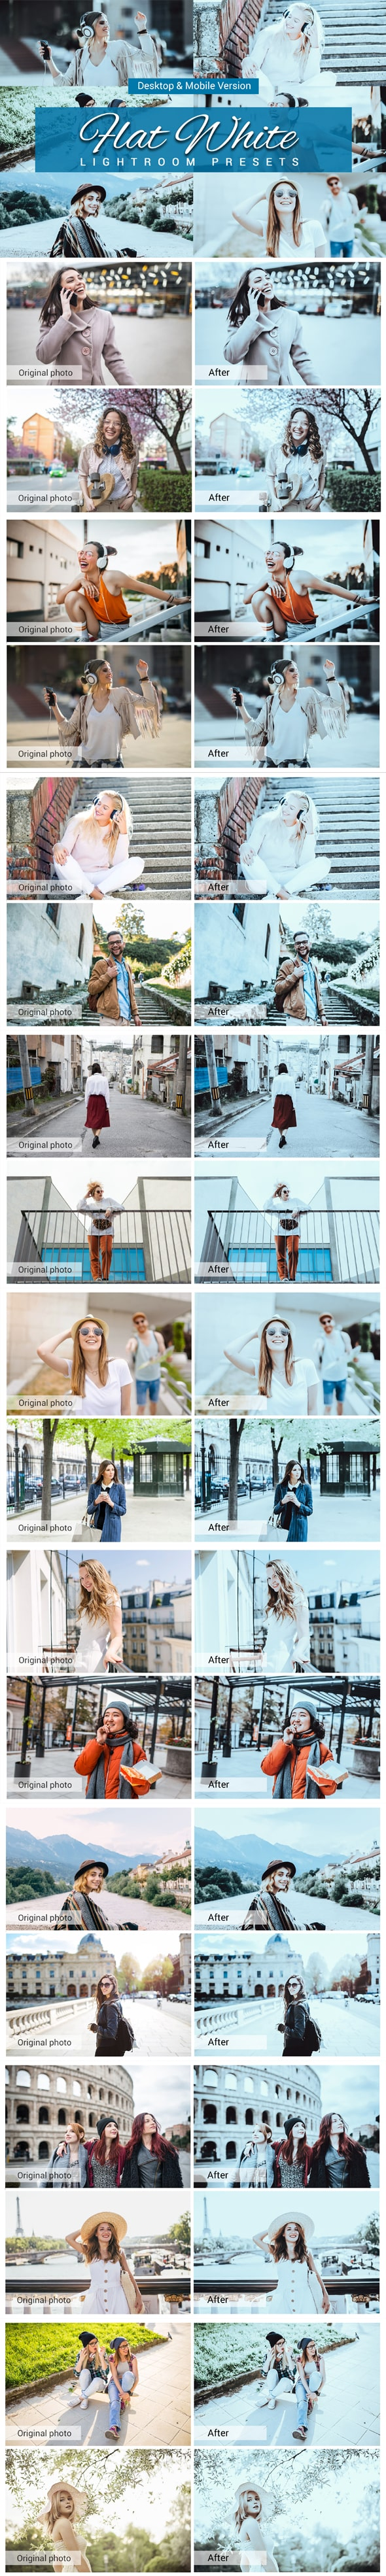 7500 New Complete Bundle Presets Lightroom, Photoshop Actions and Cinematic LUTs - Flat White Preview min